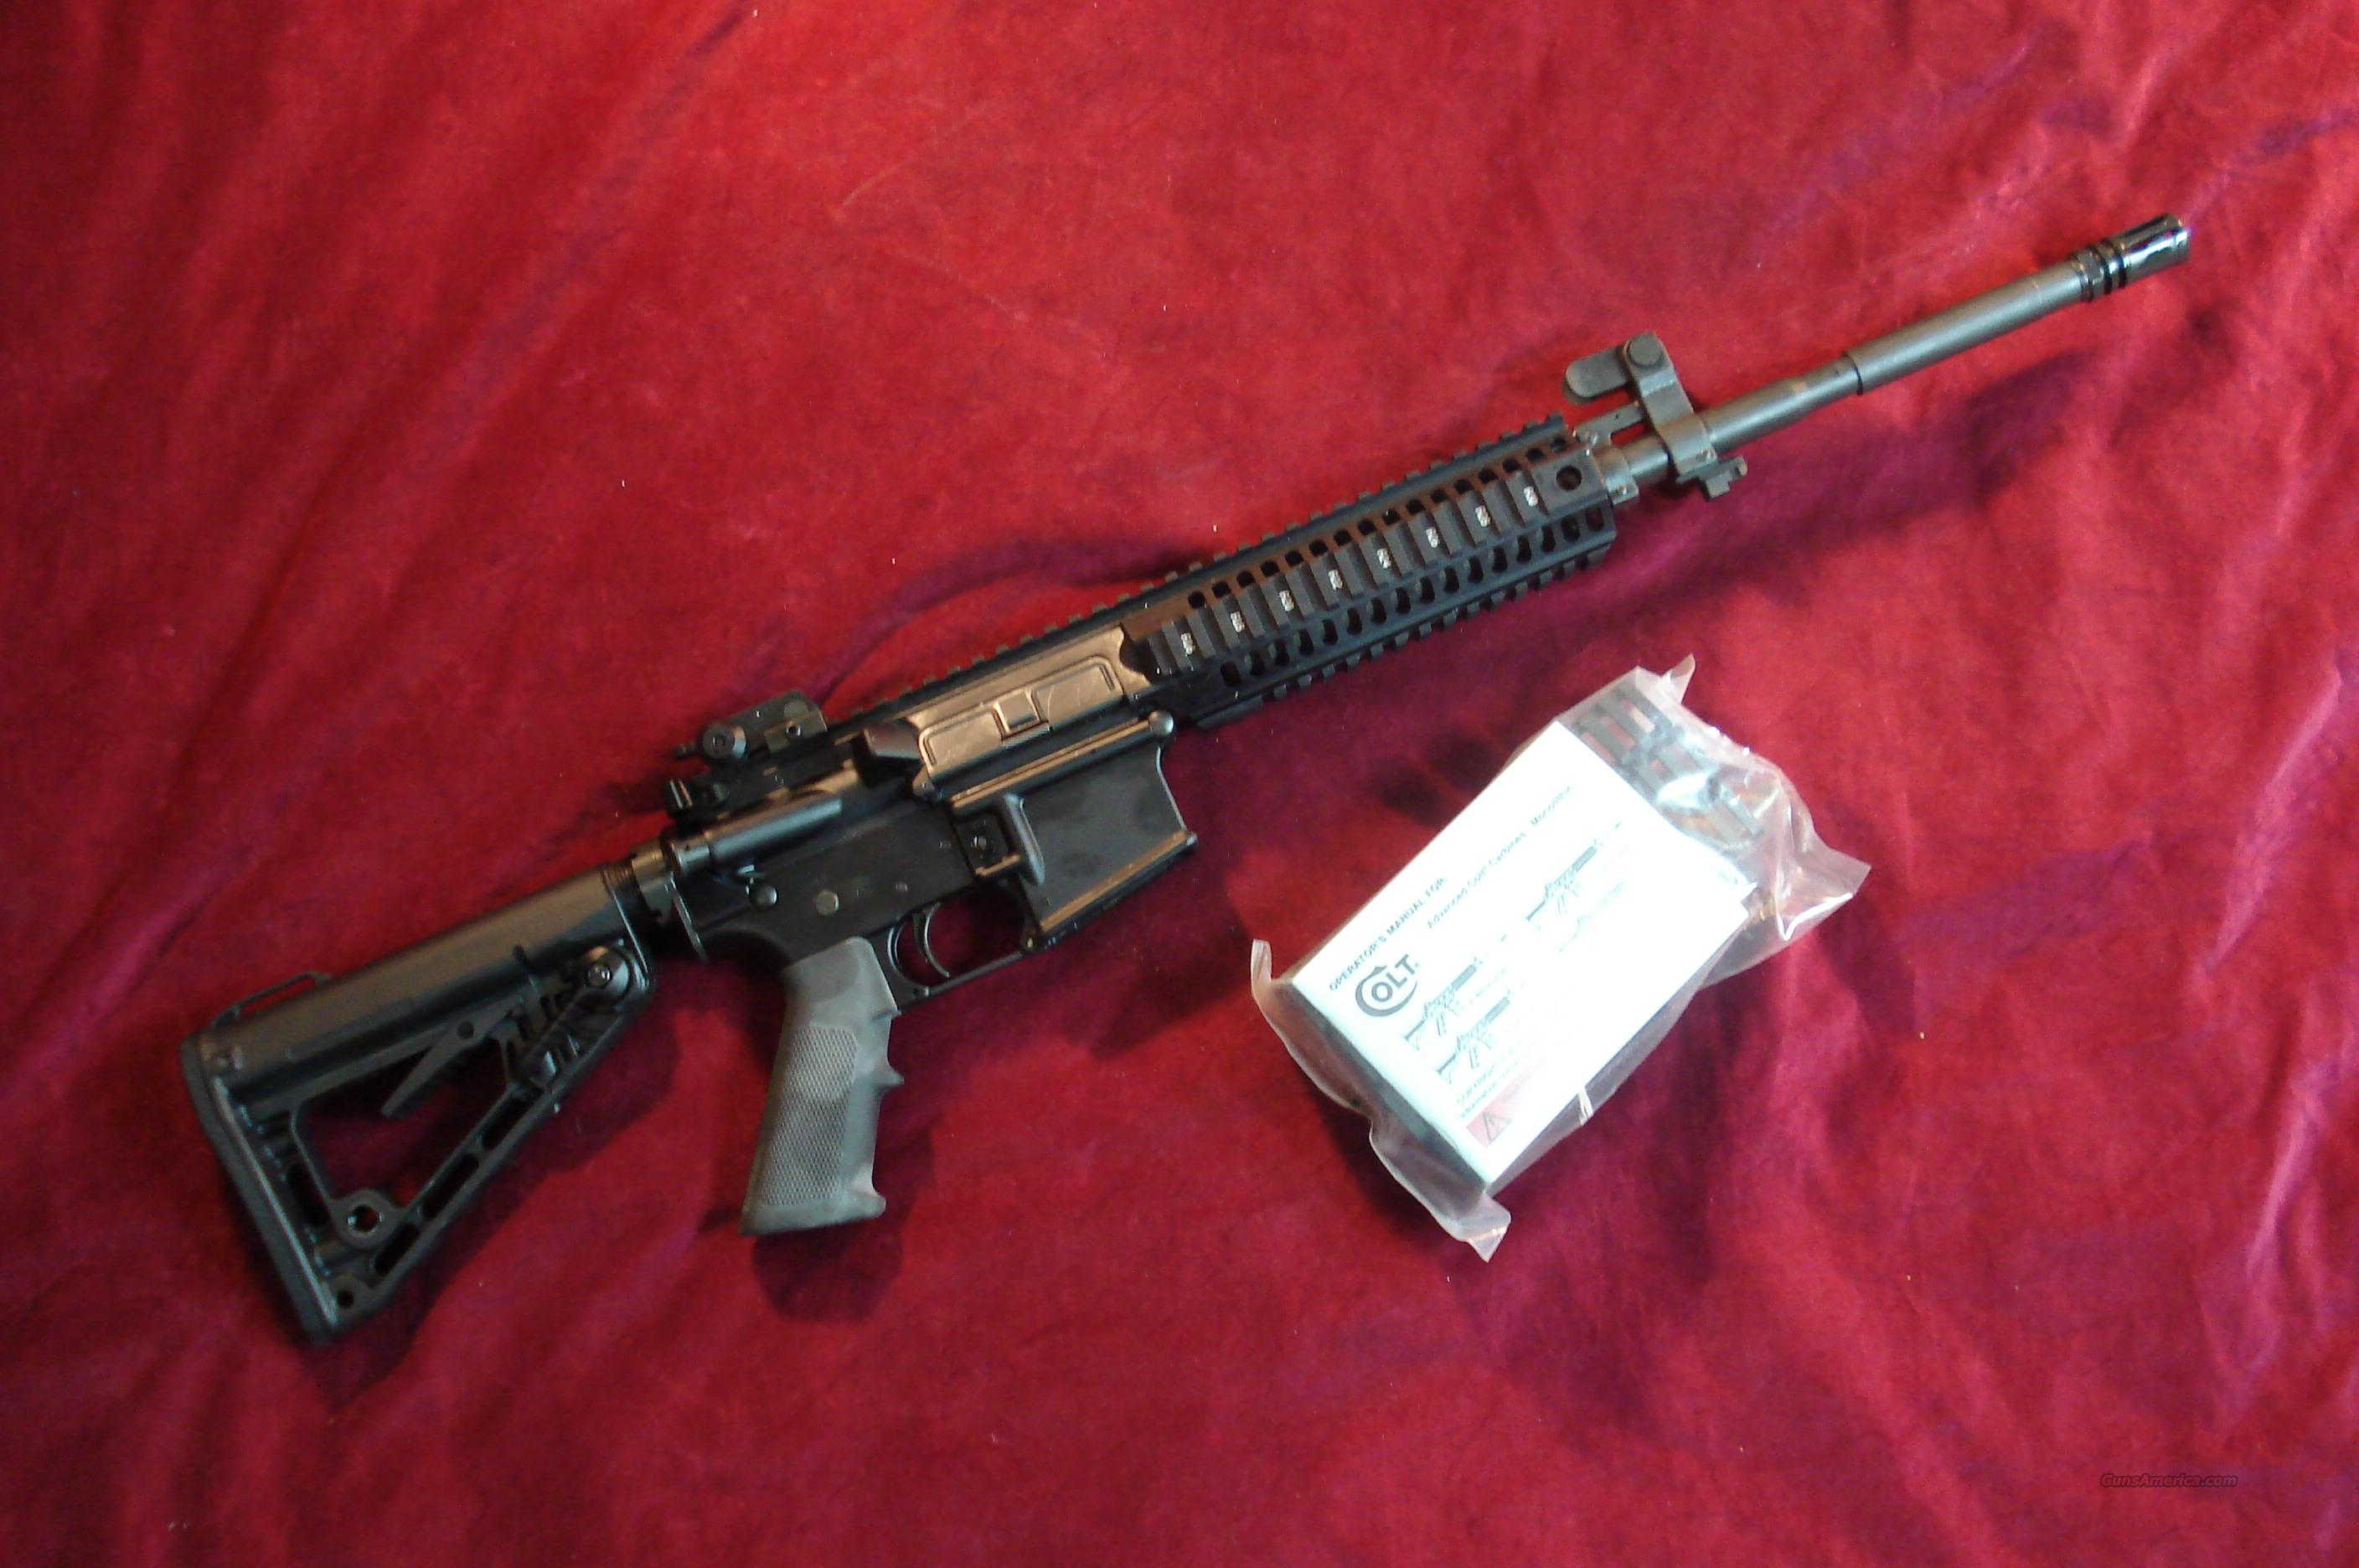 COLT  (LE6940) MONOLITHIC QUAD RAIL M4 CARBINE NEW IN THE BOX  Guns > Rifles > Colt Military/Tactical Rifles